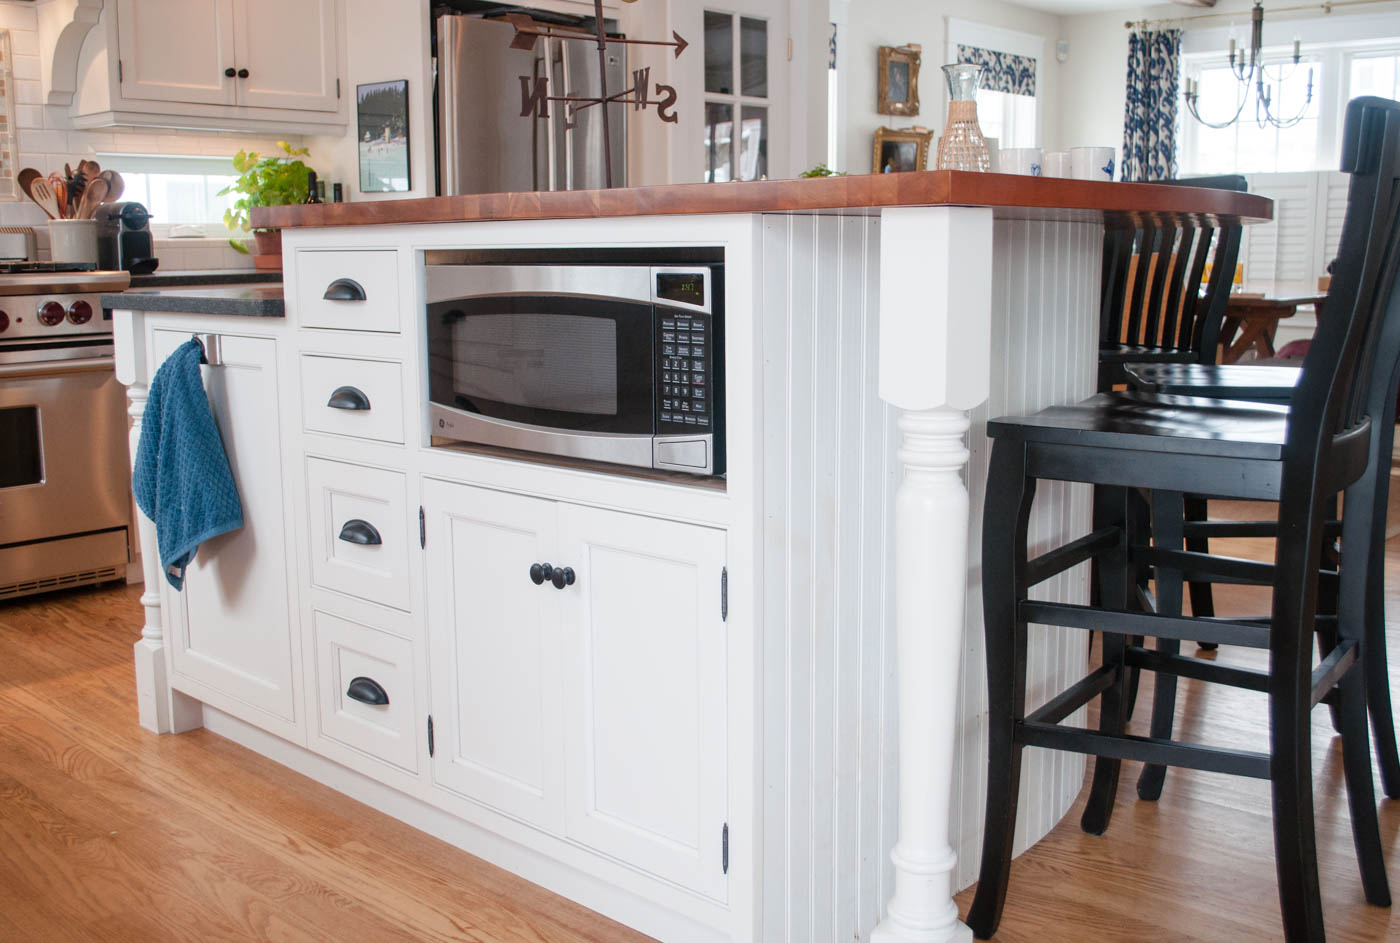 SoPo Cottage: Ugly Duckling - Kitchen Planning